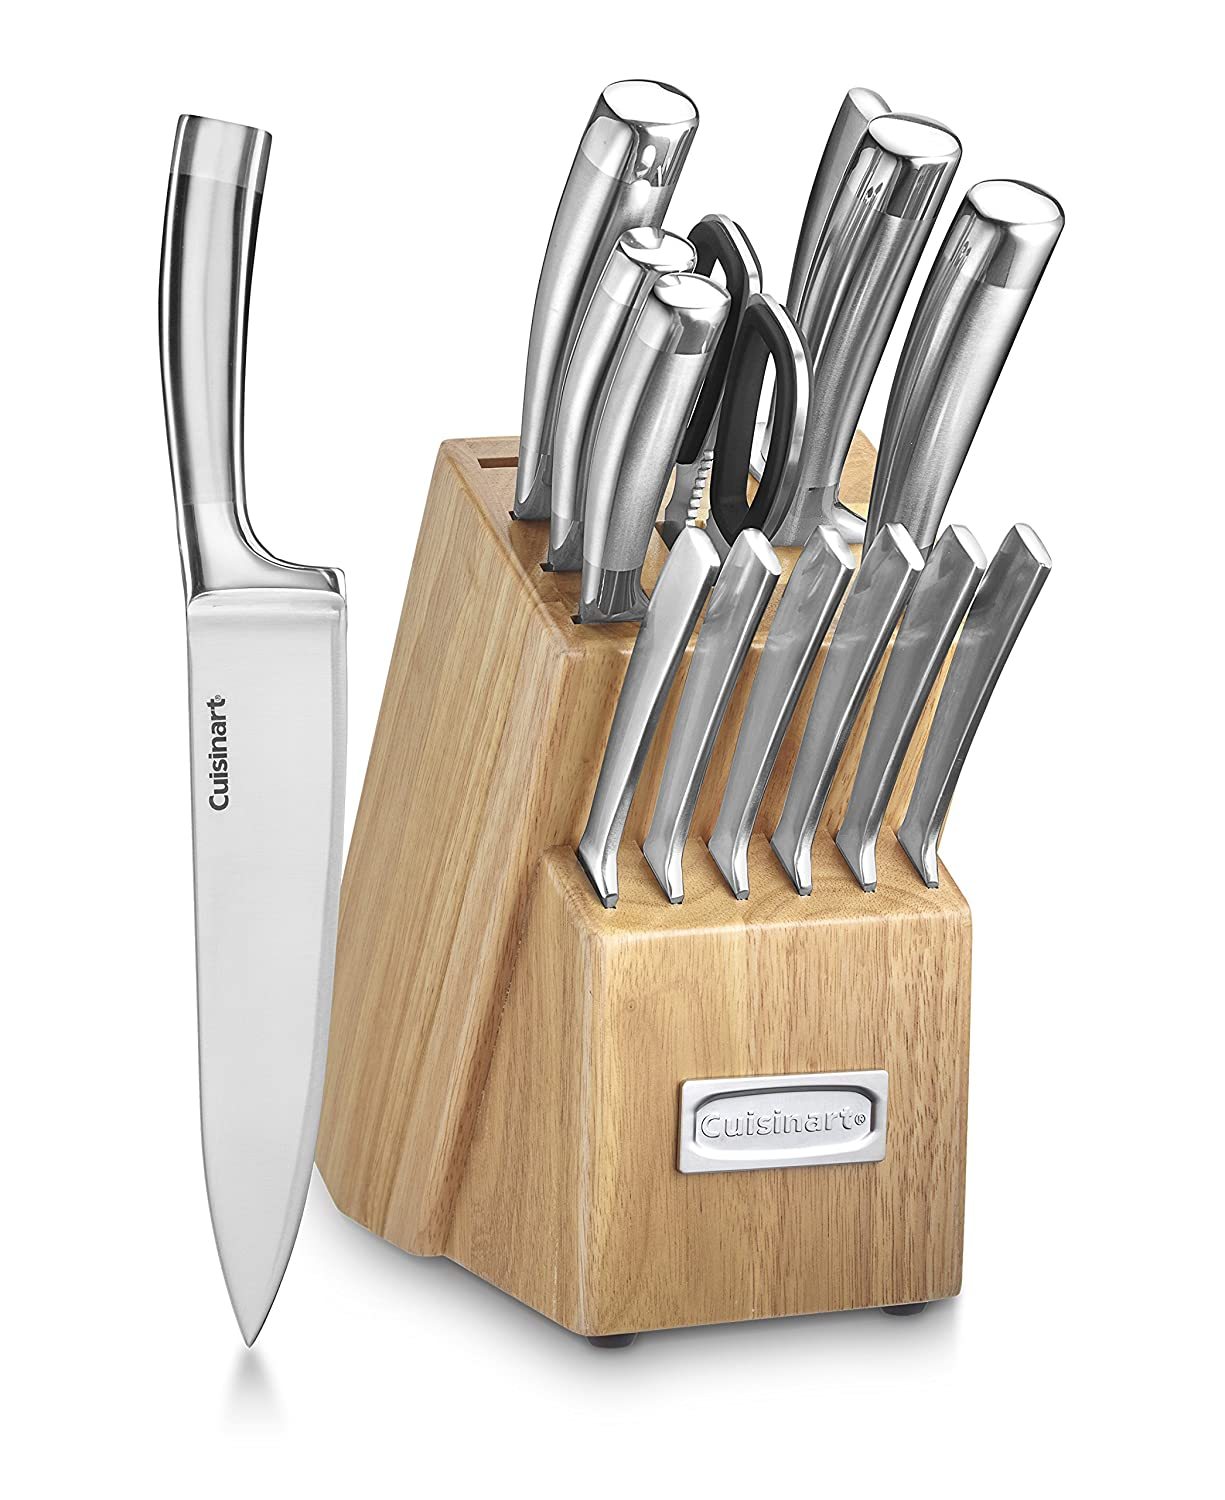 Cuisinart C99SS-15P 15 Piece Stainless Steel Blades Set with Wood Block, Silver